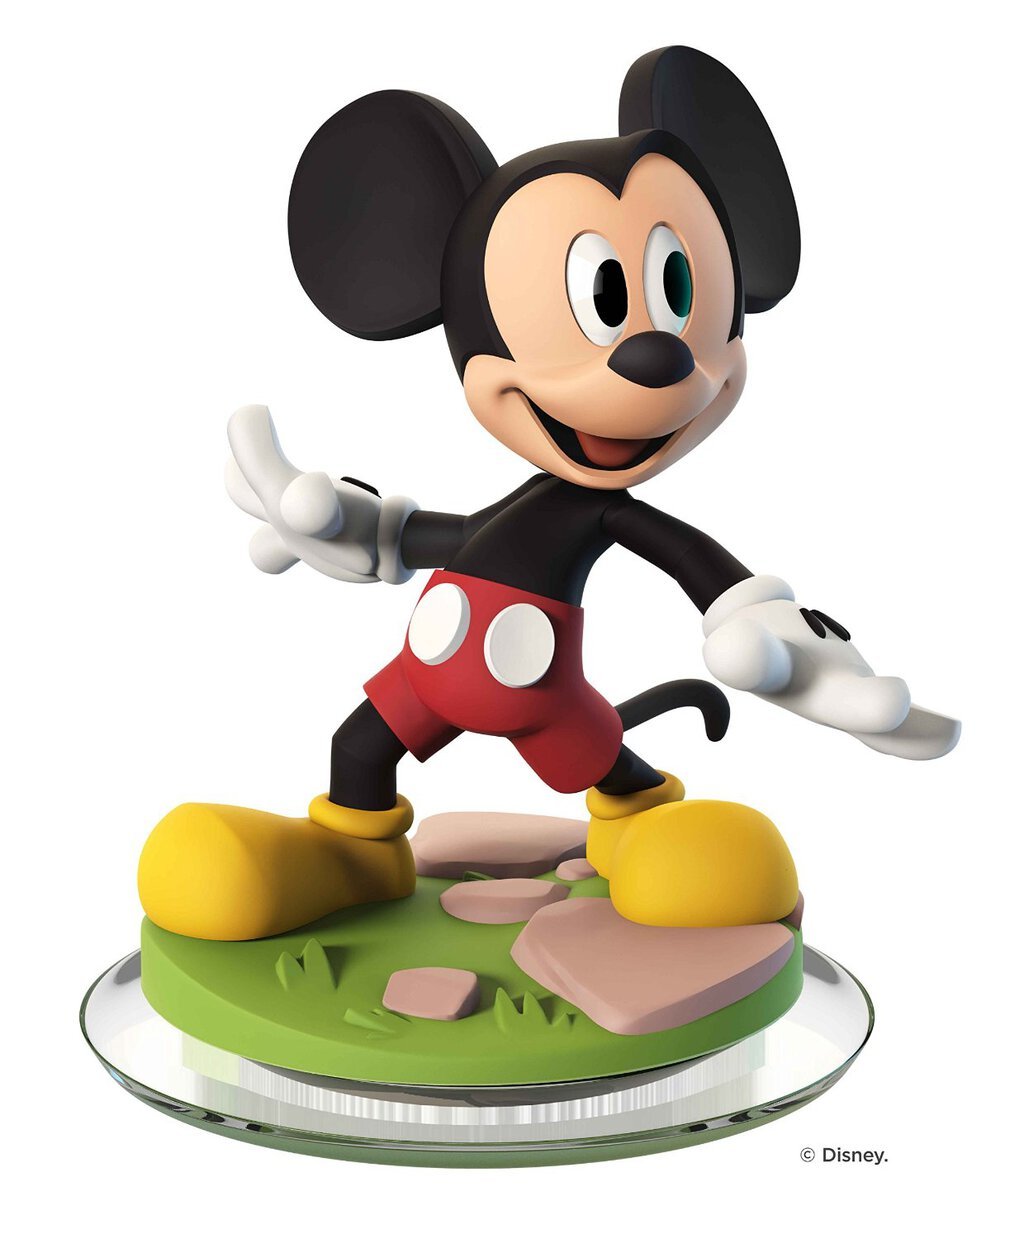 Disney Infinity 3.0 Star Wars Twilight of the Republic PS4 Starter Pack with Mickey Character #Giveaway